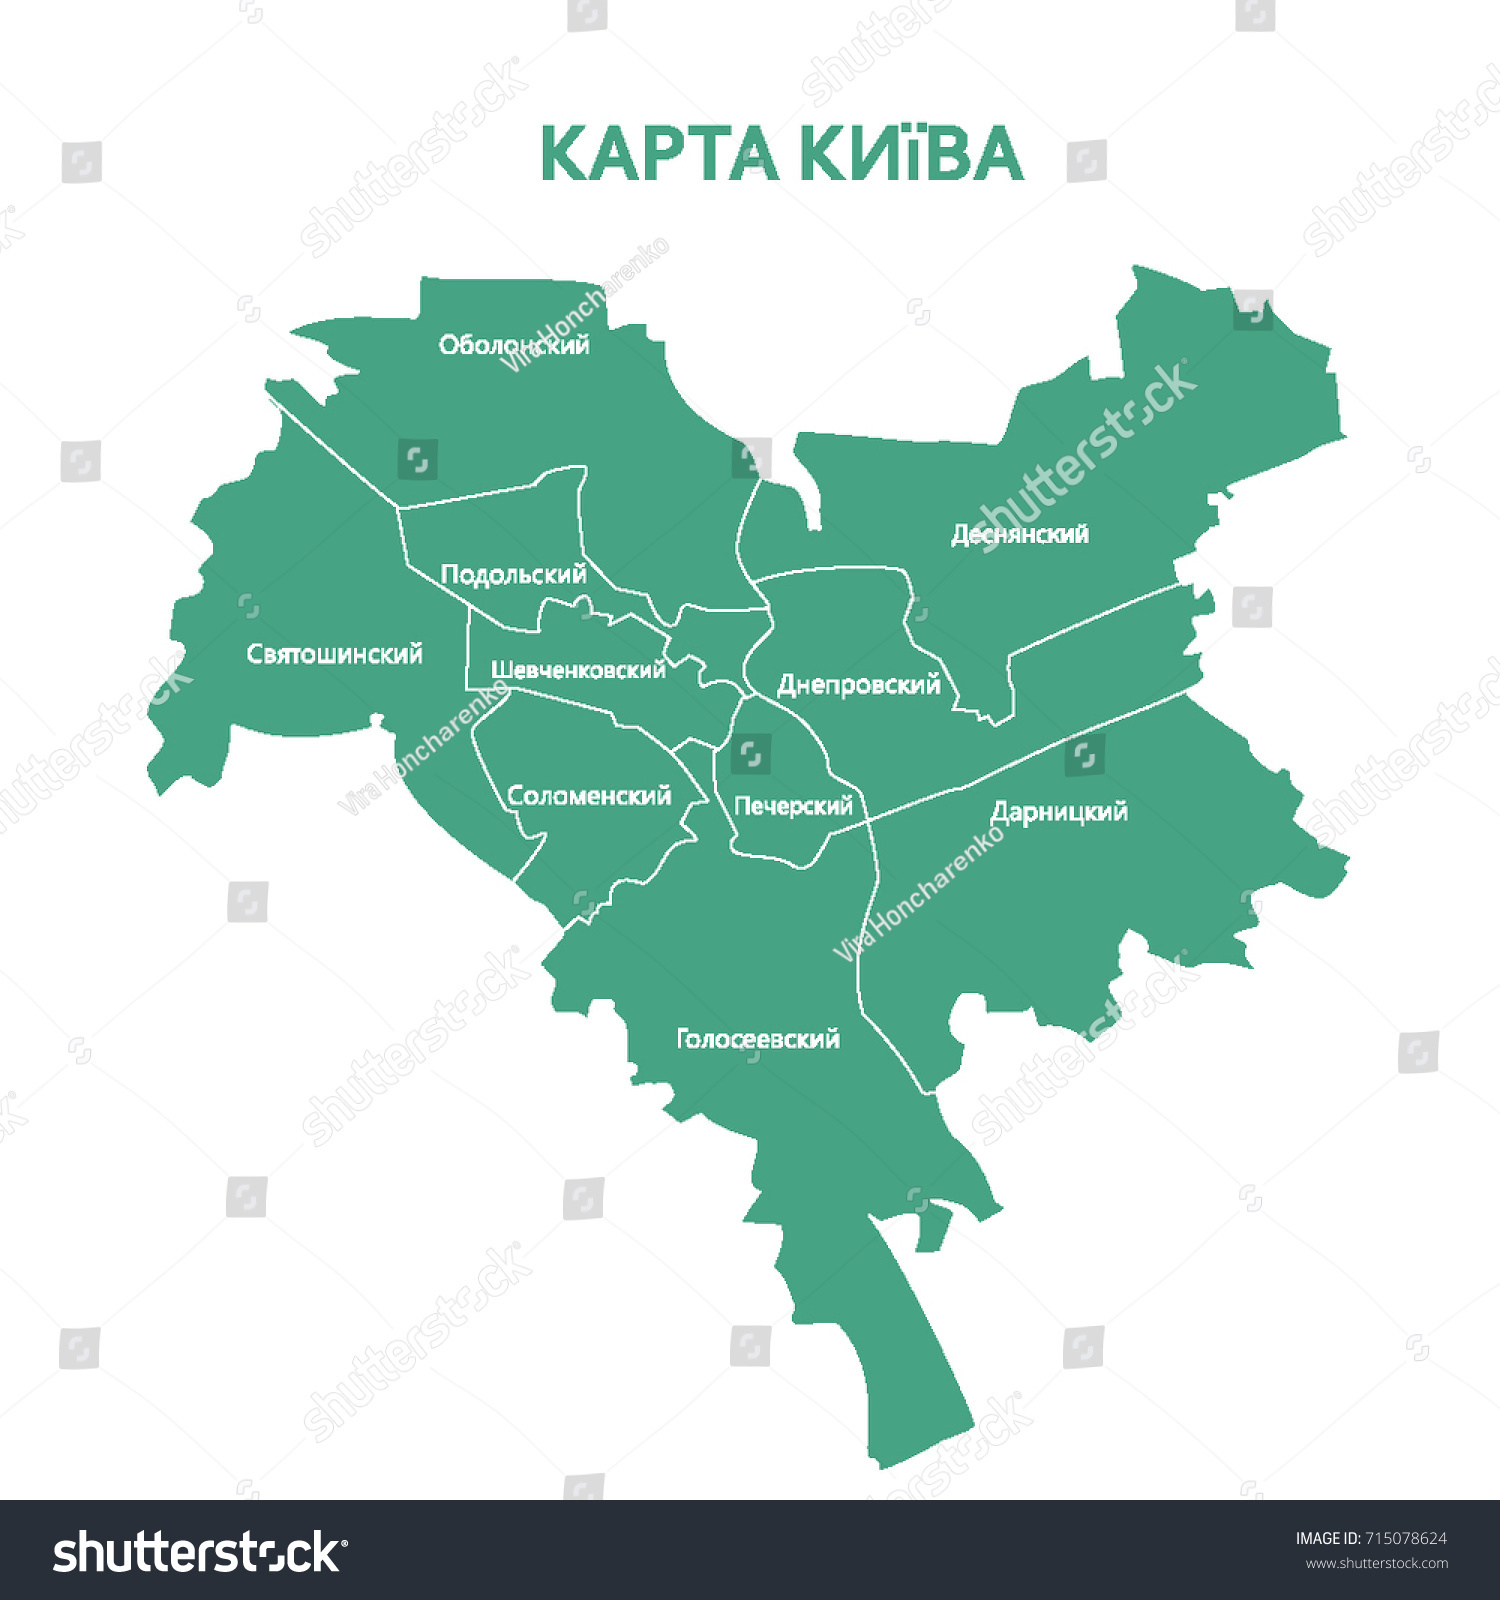 Kiev Map on brussels map, islamabad map, astana map, dnieper river, black sea map, chisinau map, constantinople map, minsk on map, russia map, volgograd map, crimea map, warsaw map, timbuktu map, ukraine map, caucasus mountains map, kyiv map, st. petersburg map, leningrad map, saint petersburg, moscow map, kievan rus map, jerusalem map,